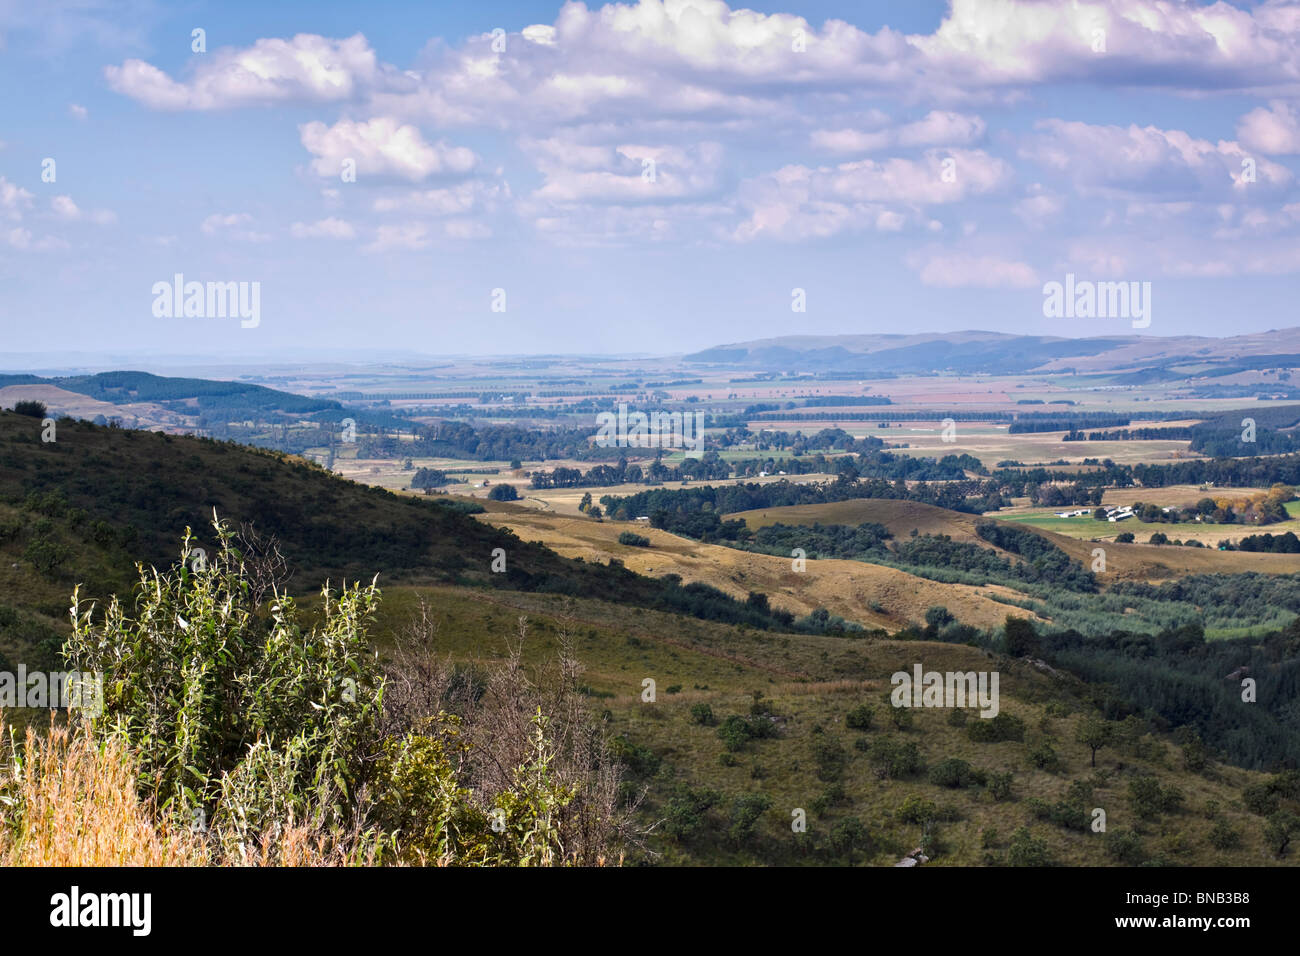 Distant farmlands in the foothills of the Drakensberg, Midlands, KwaZulu Natal, South Africa. Stock Photo